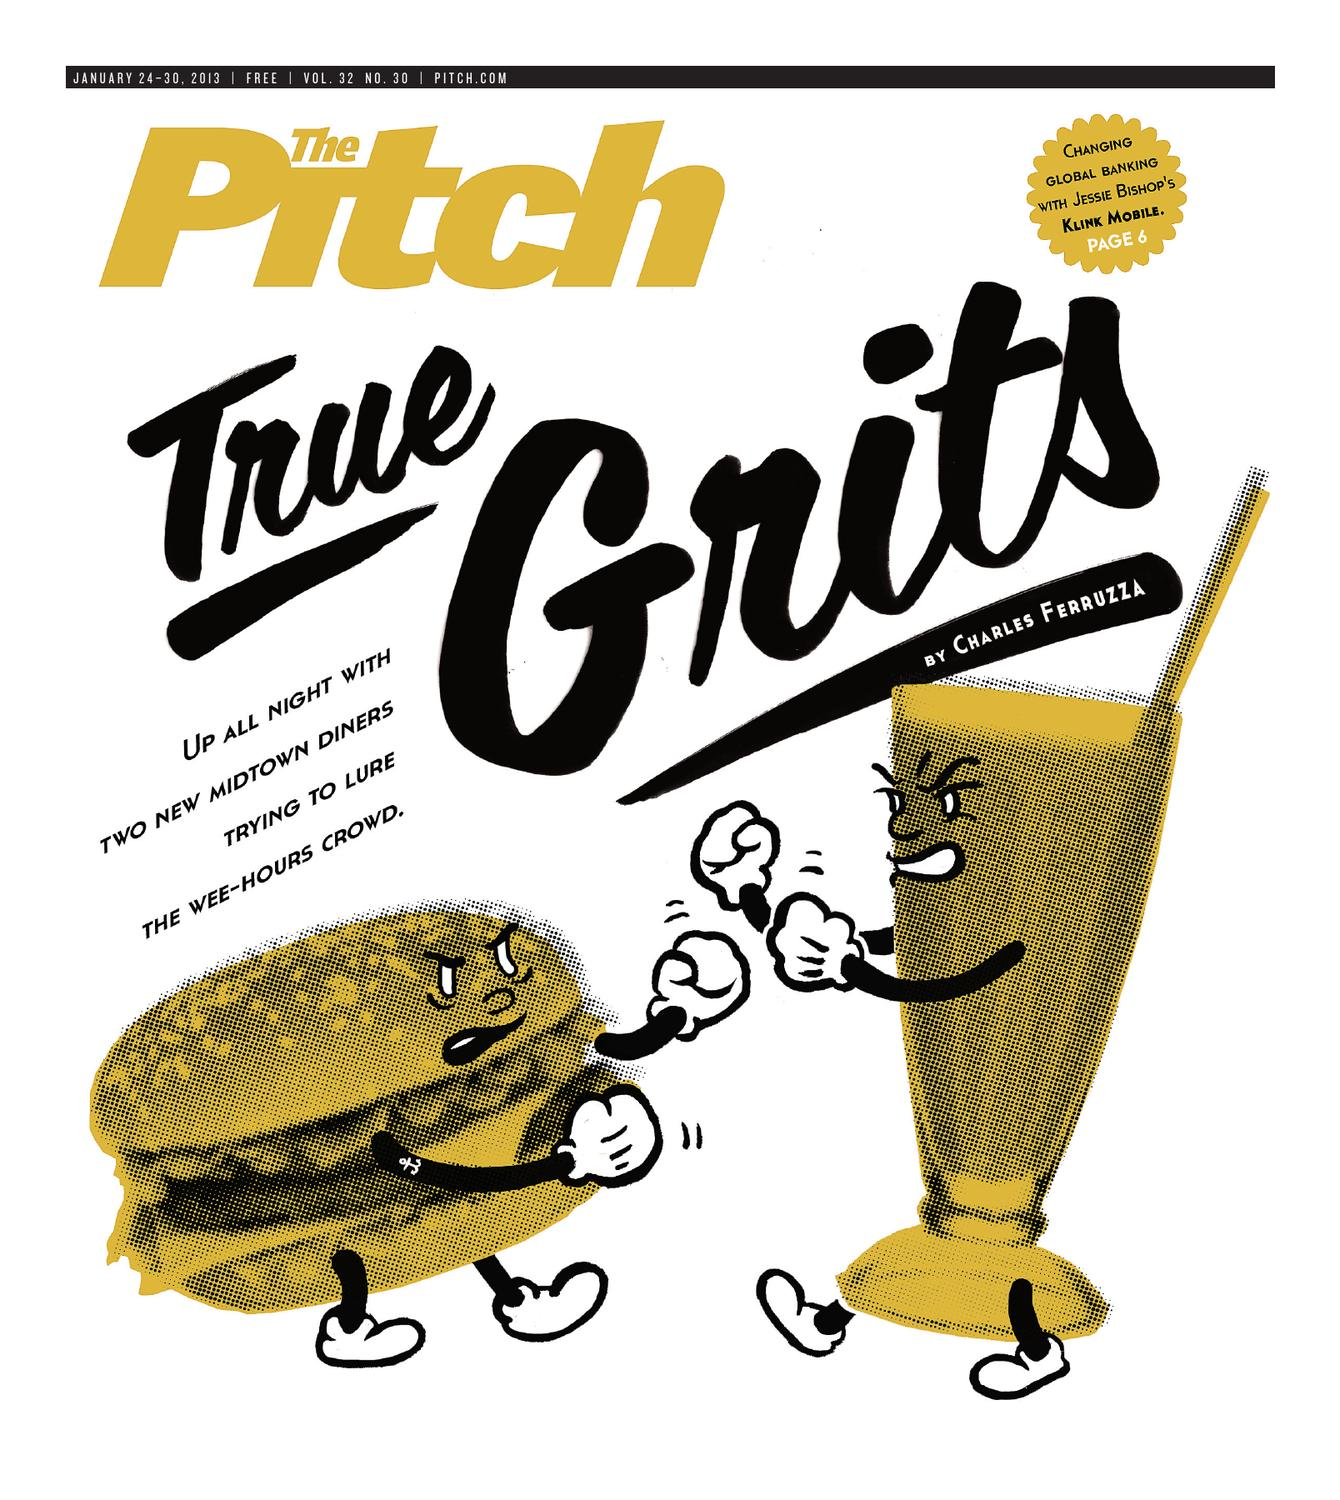 The Pitch: January 24, 2013